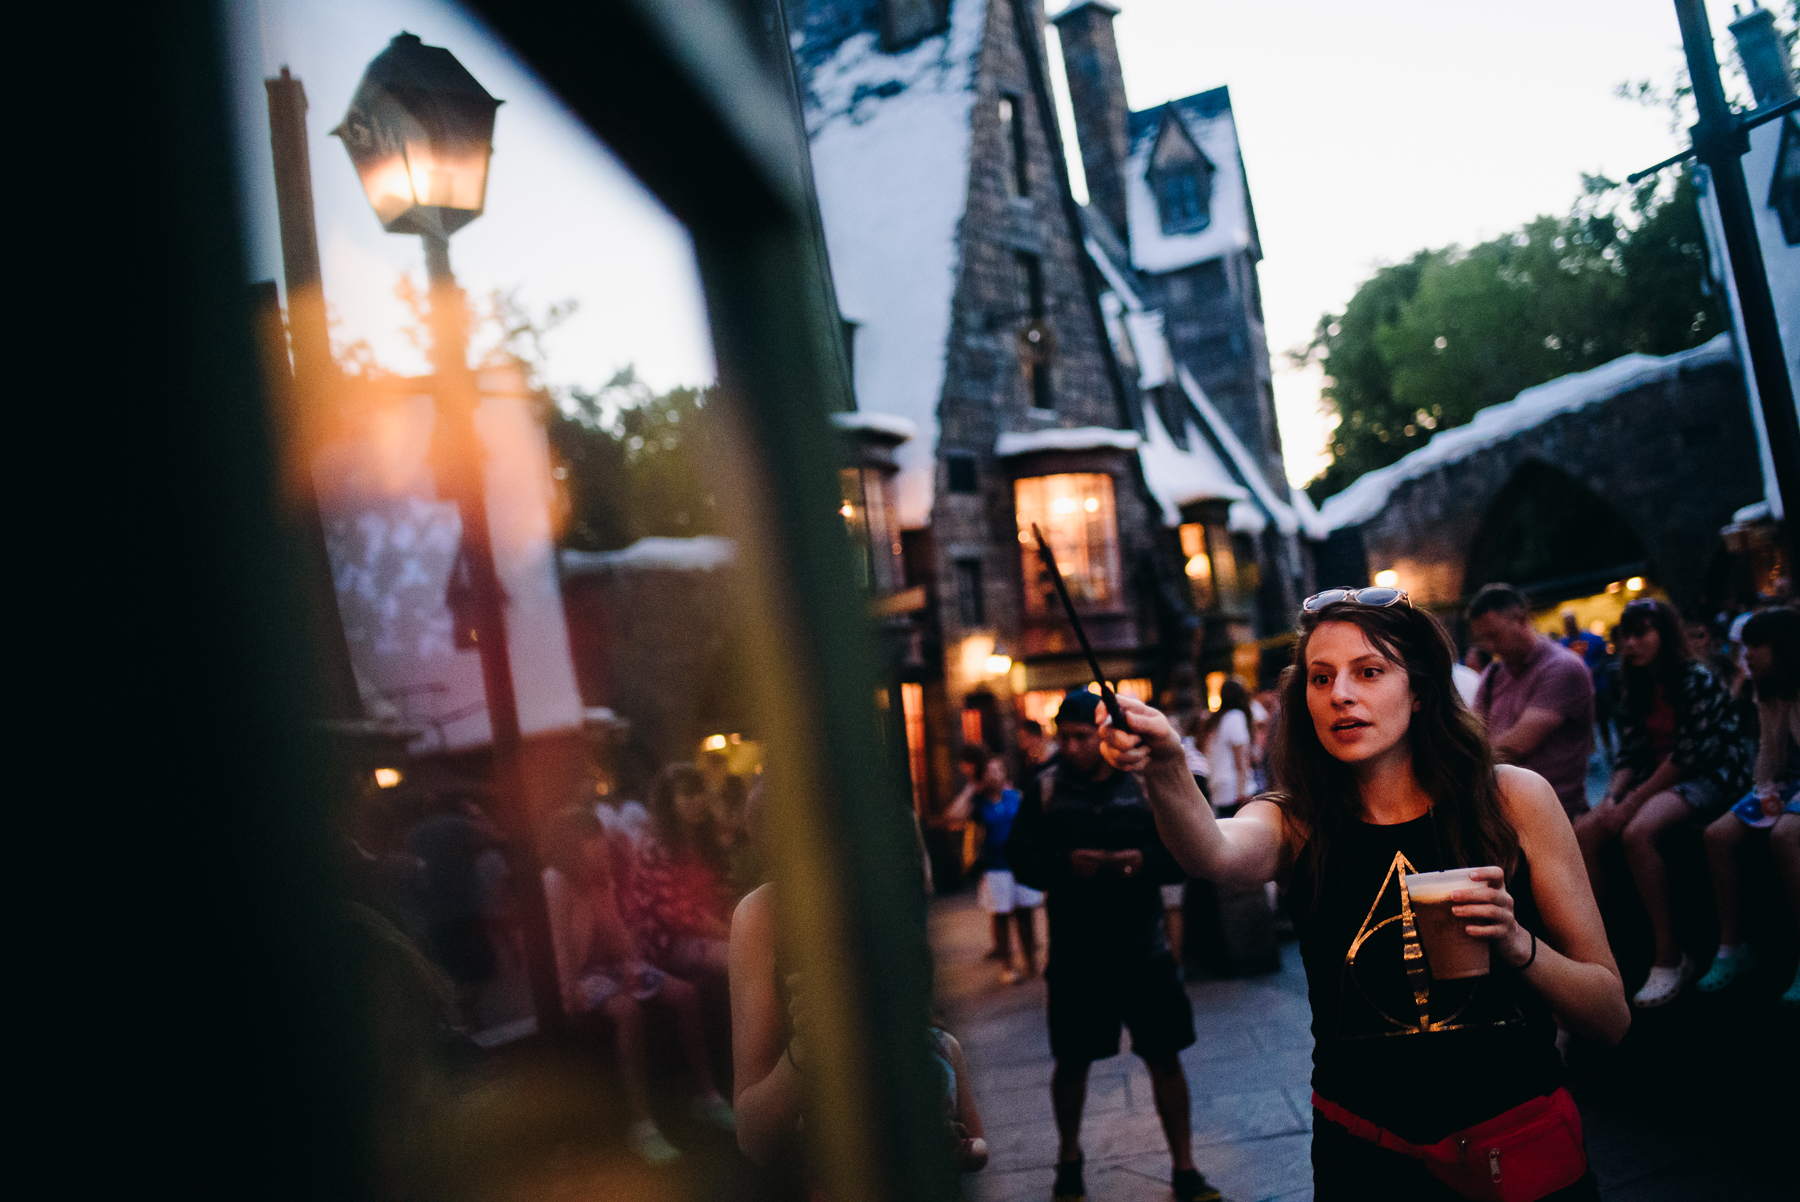 wizarding-world-of-harry-potter-florida-family-photographer-lifestyle-shoot-38